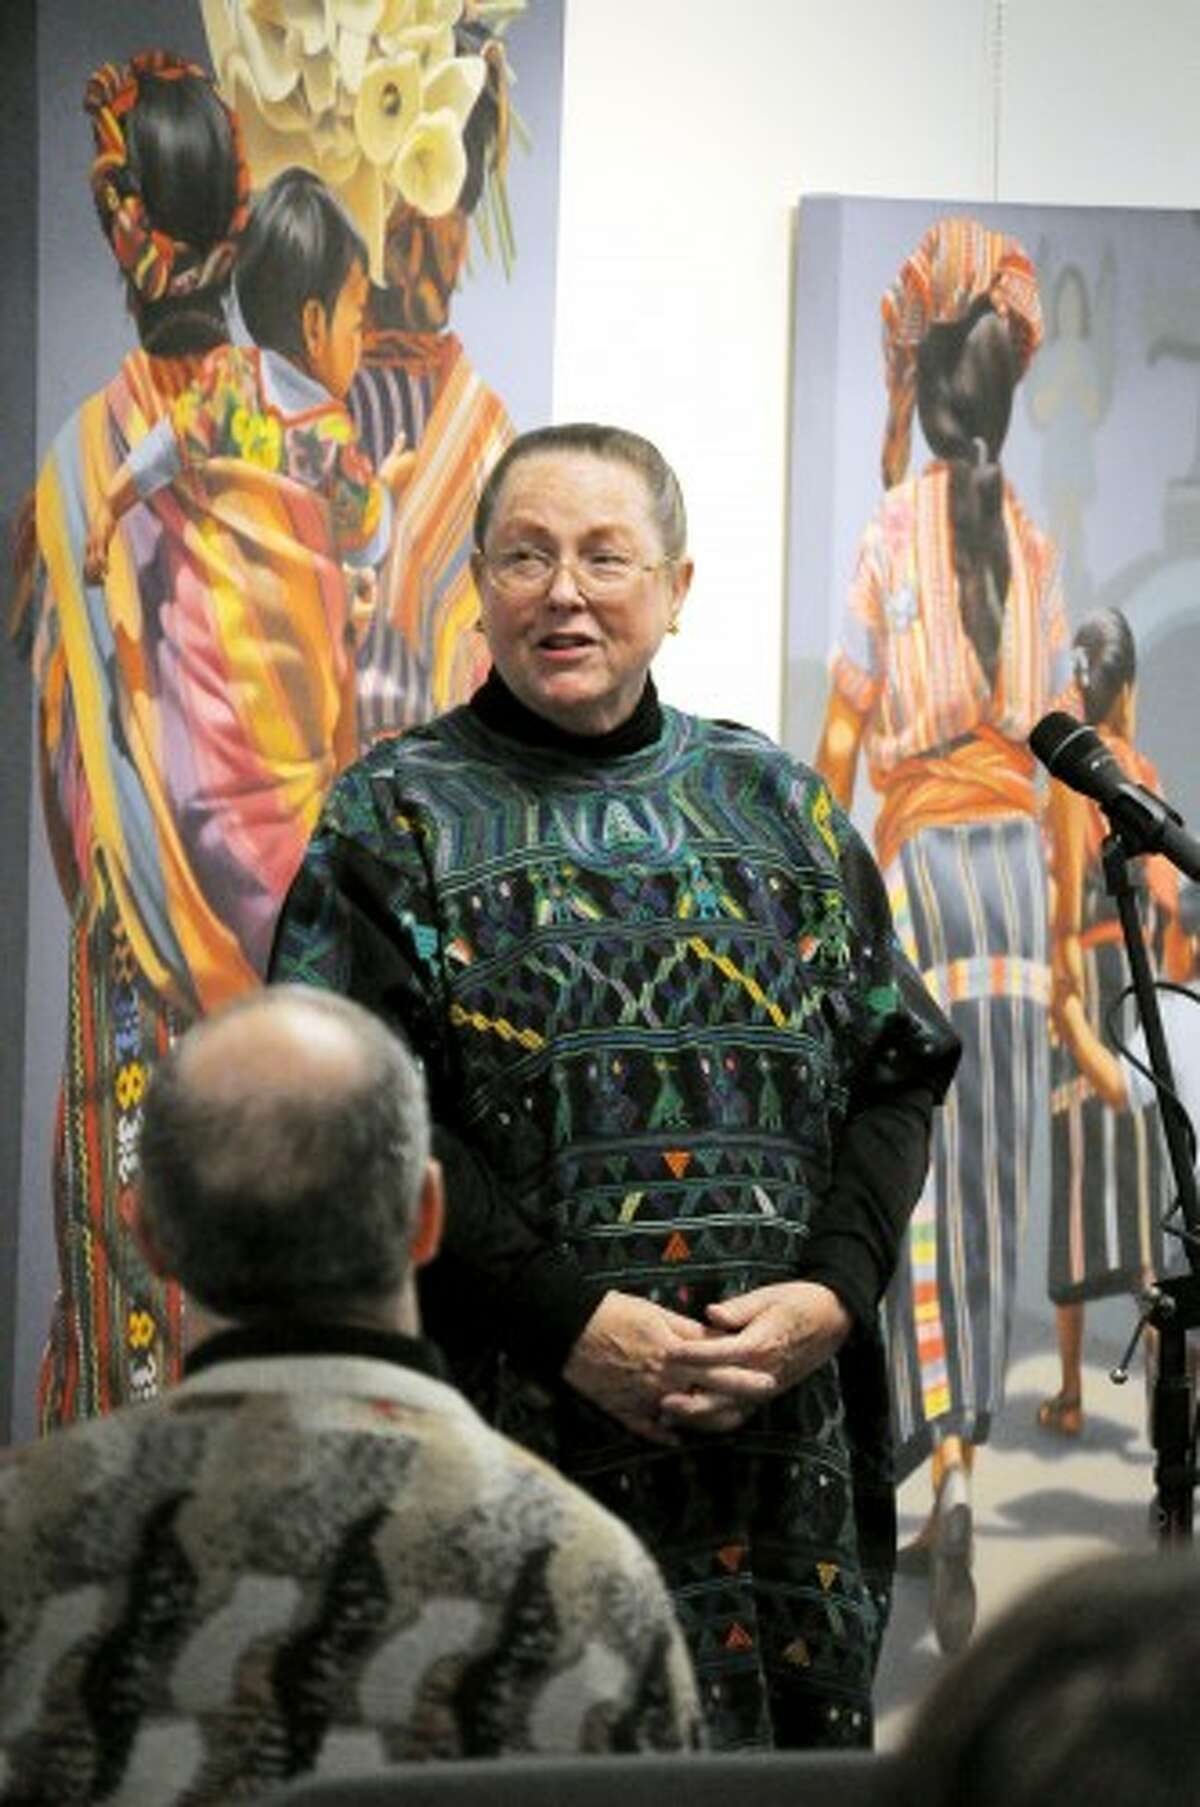 OPENING REMARKS: Chicago artist Winifred Godfrey gives the keynote address on Monday at the 2012 Festival of the Arts opening reception at Artworks. Her paintings of a Mayan funeral procession will be on display until Feb. 25. (Pioneer photo/Kyle Leppek)